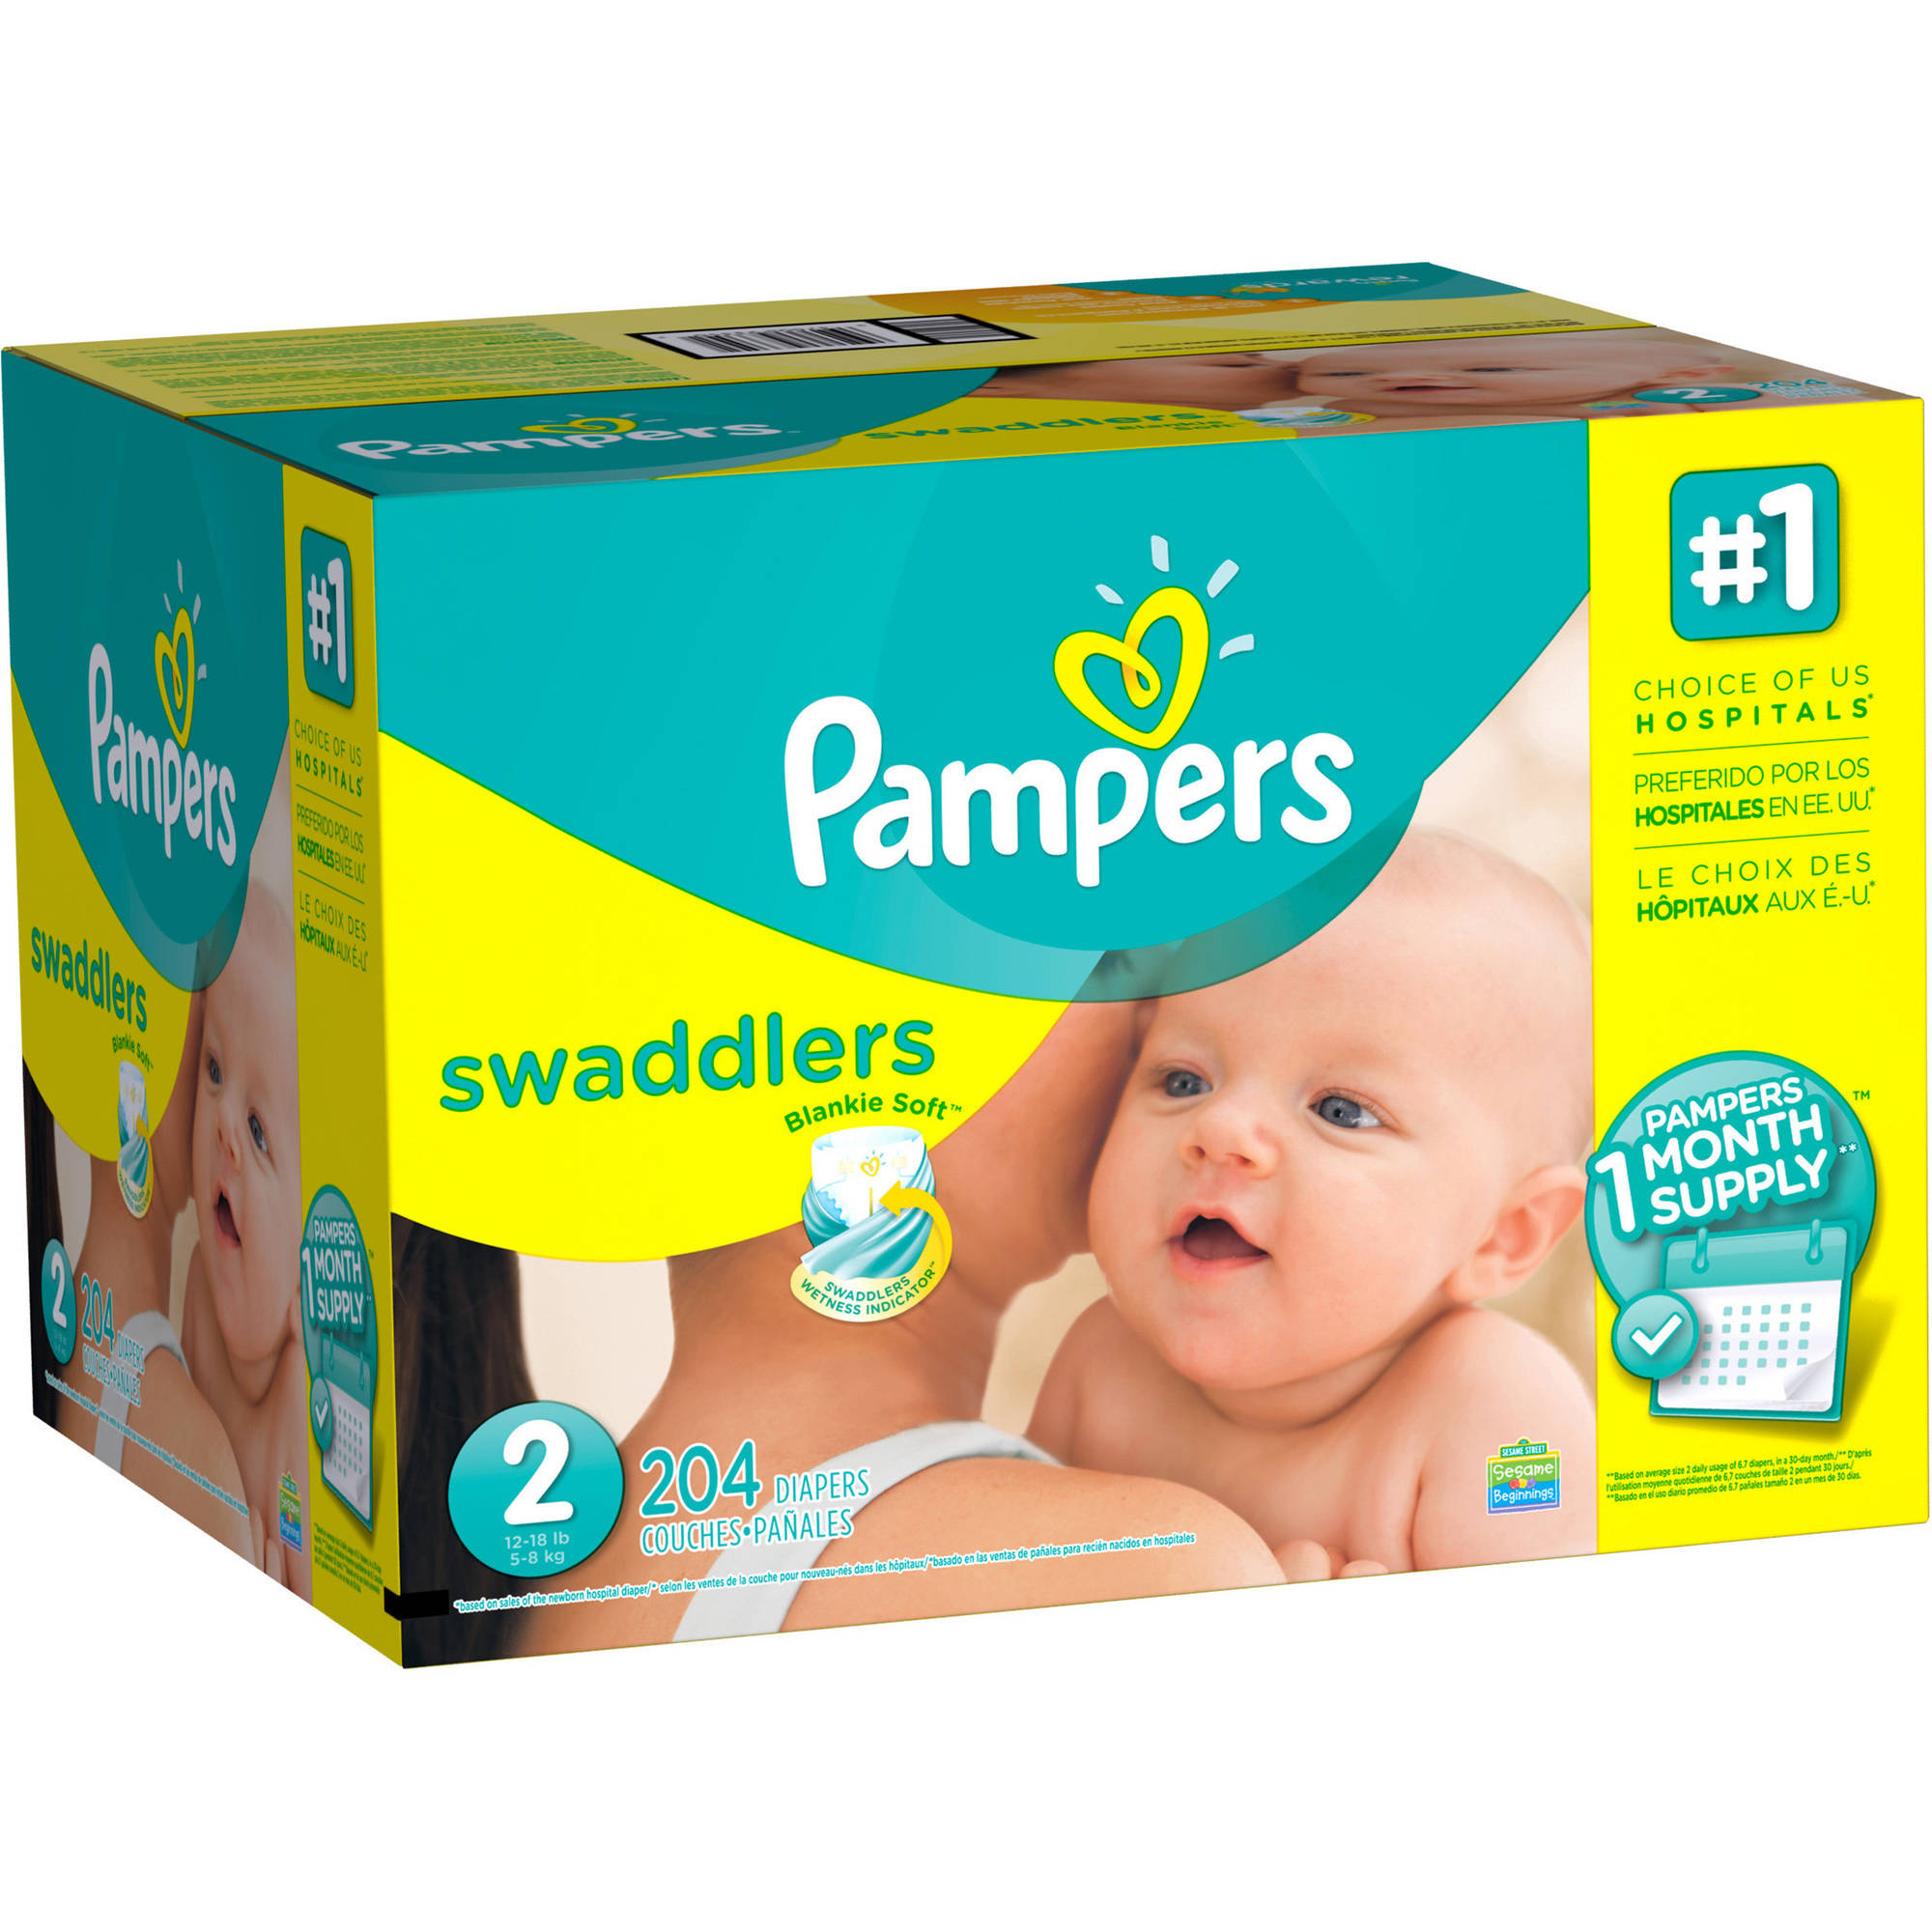 Pampers Swaddlers Diapers One Month Supply, (Choose Your Size)